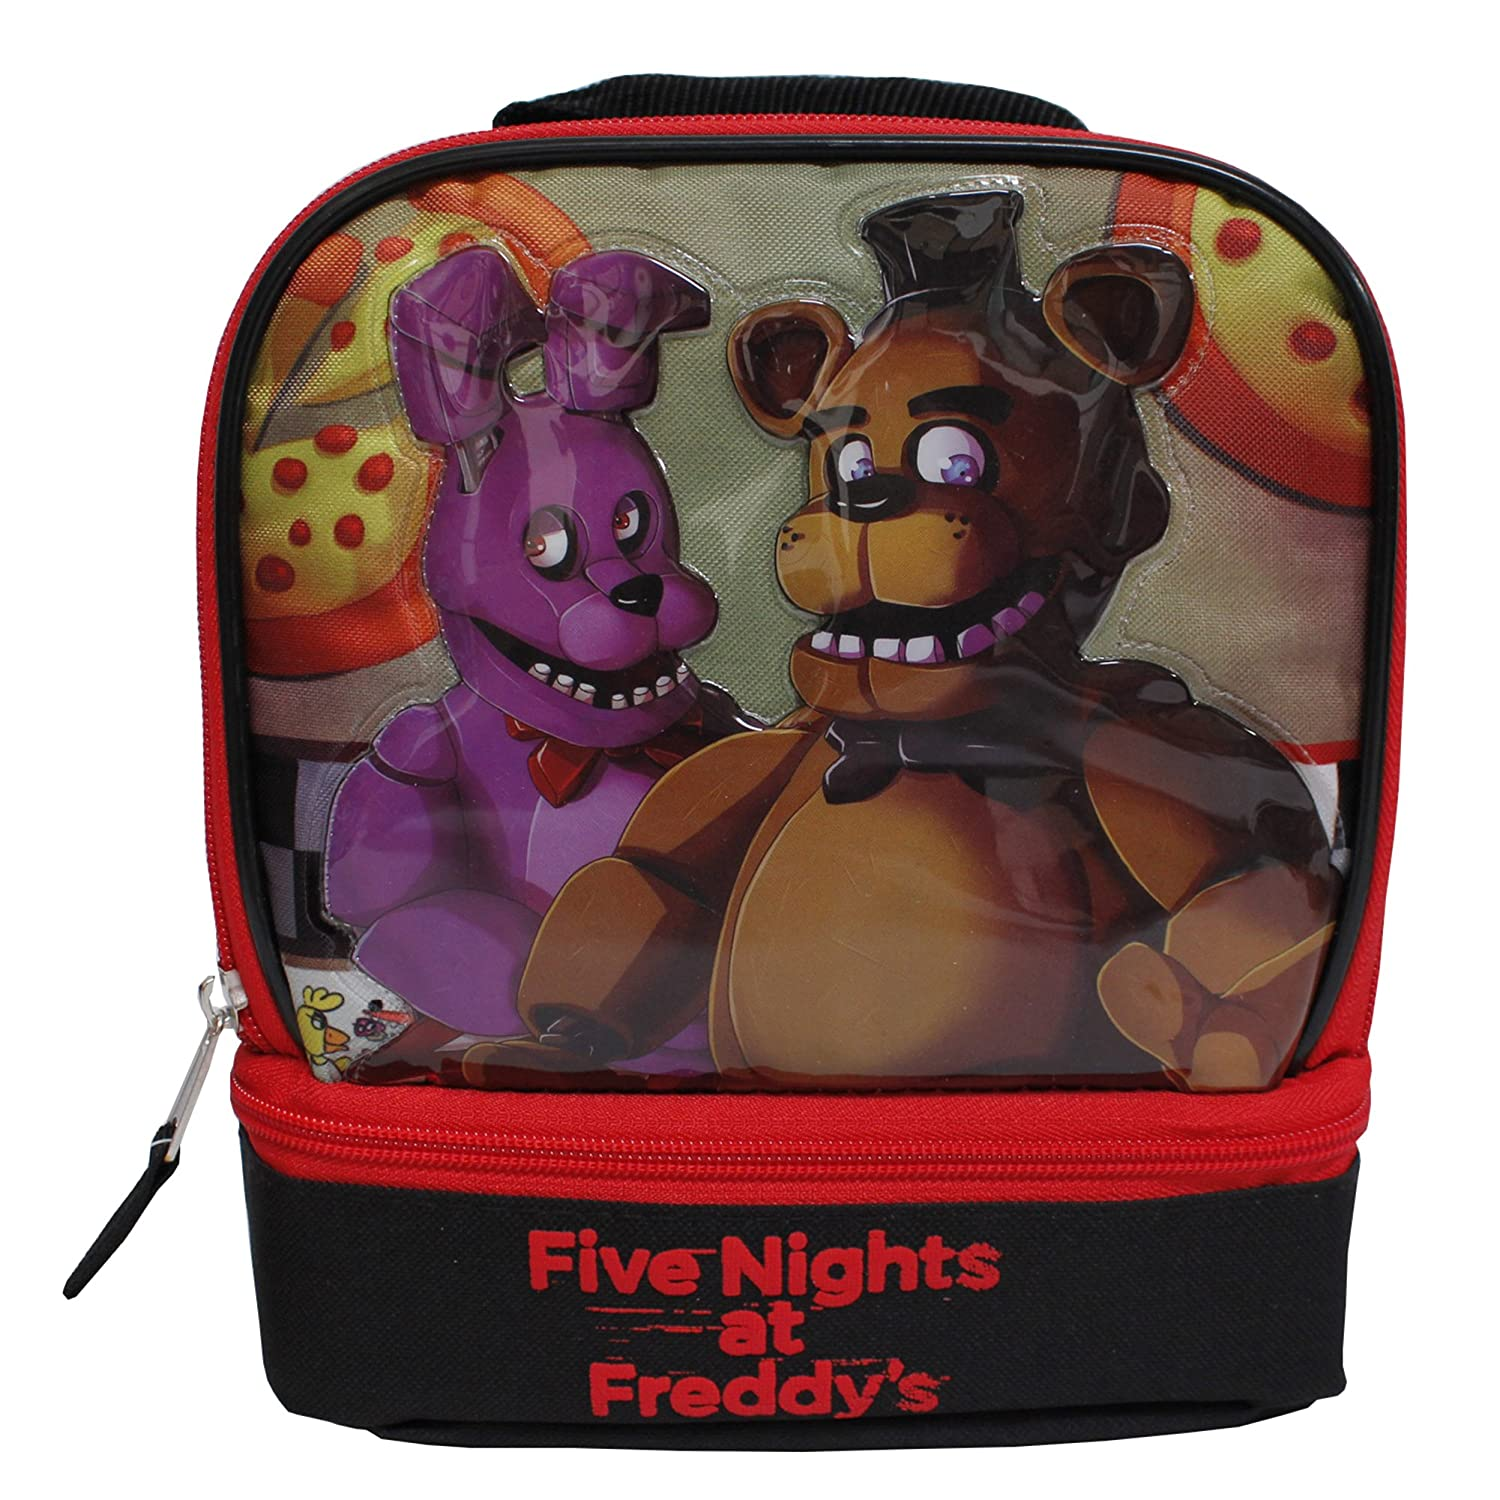 Five Nights At At At Freddy's - Bolso escolar con aislamiento, color negro y rojo ea94f8